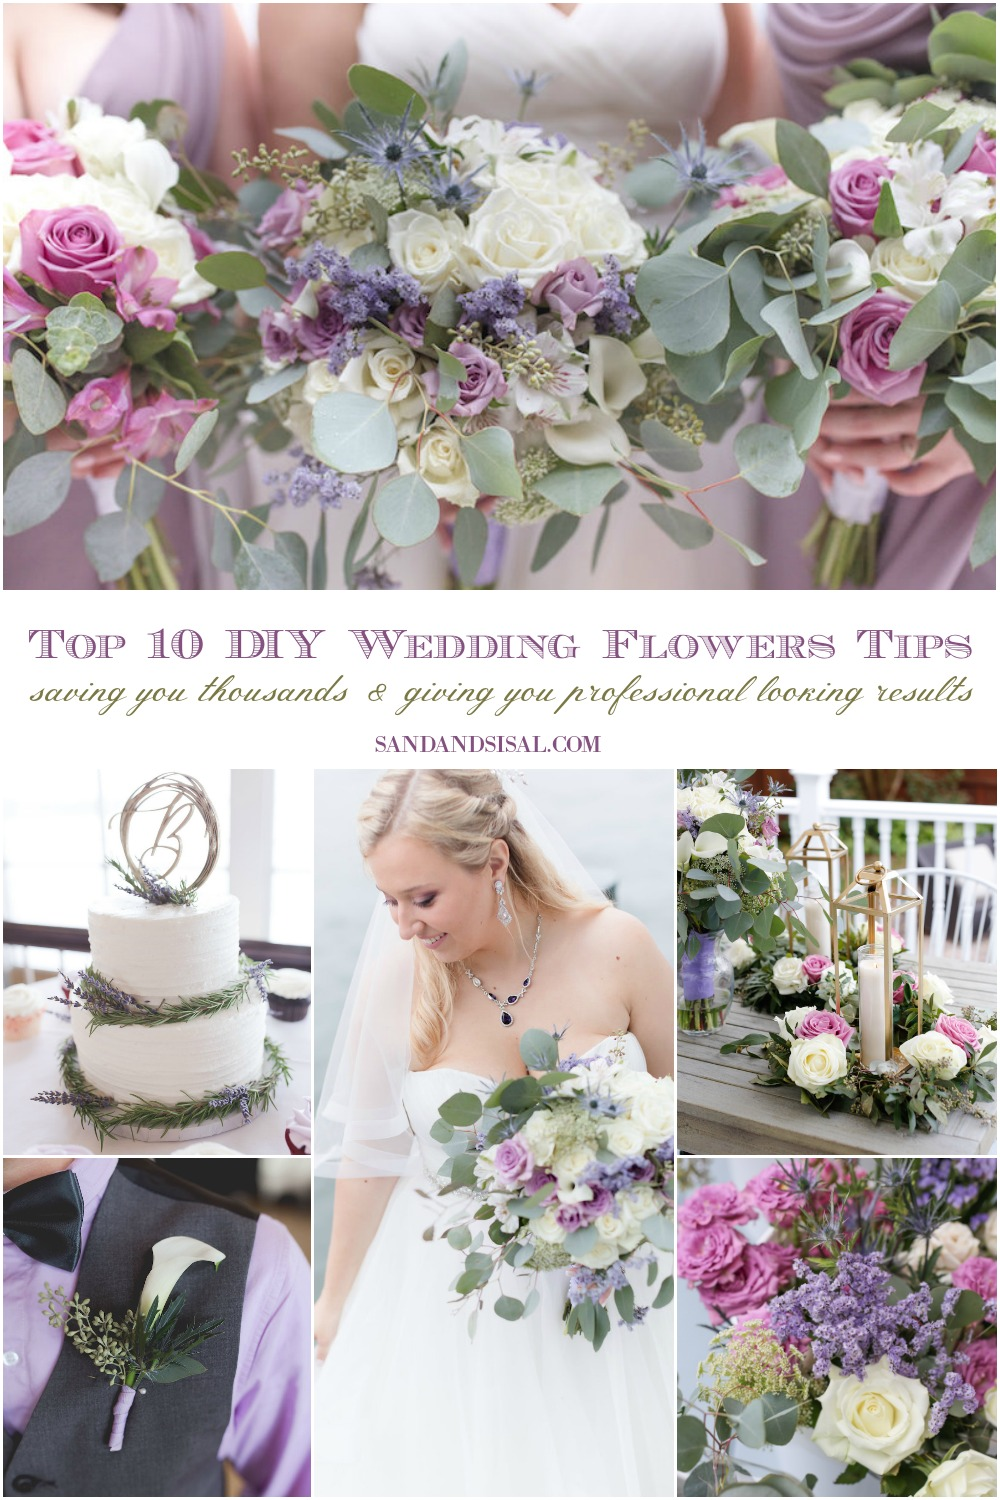 Top 10 DIY Wedding Flowers Tips